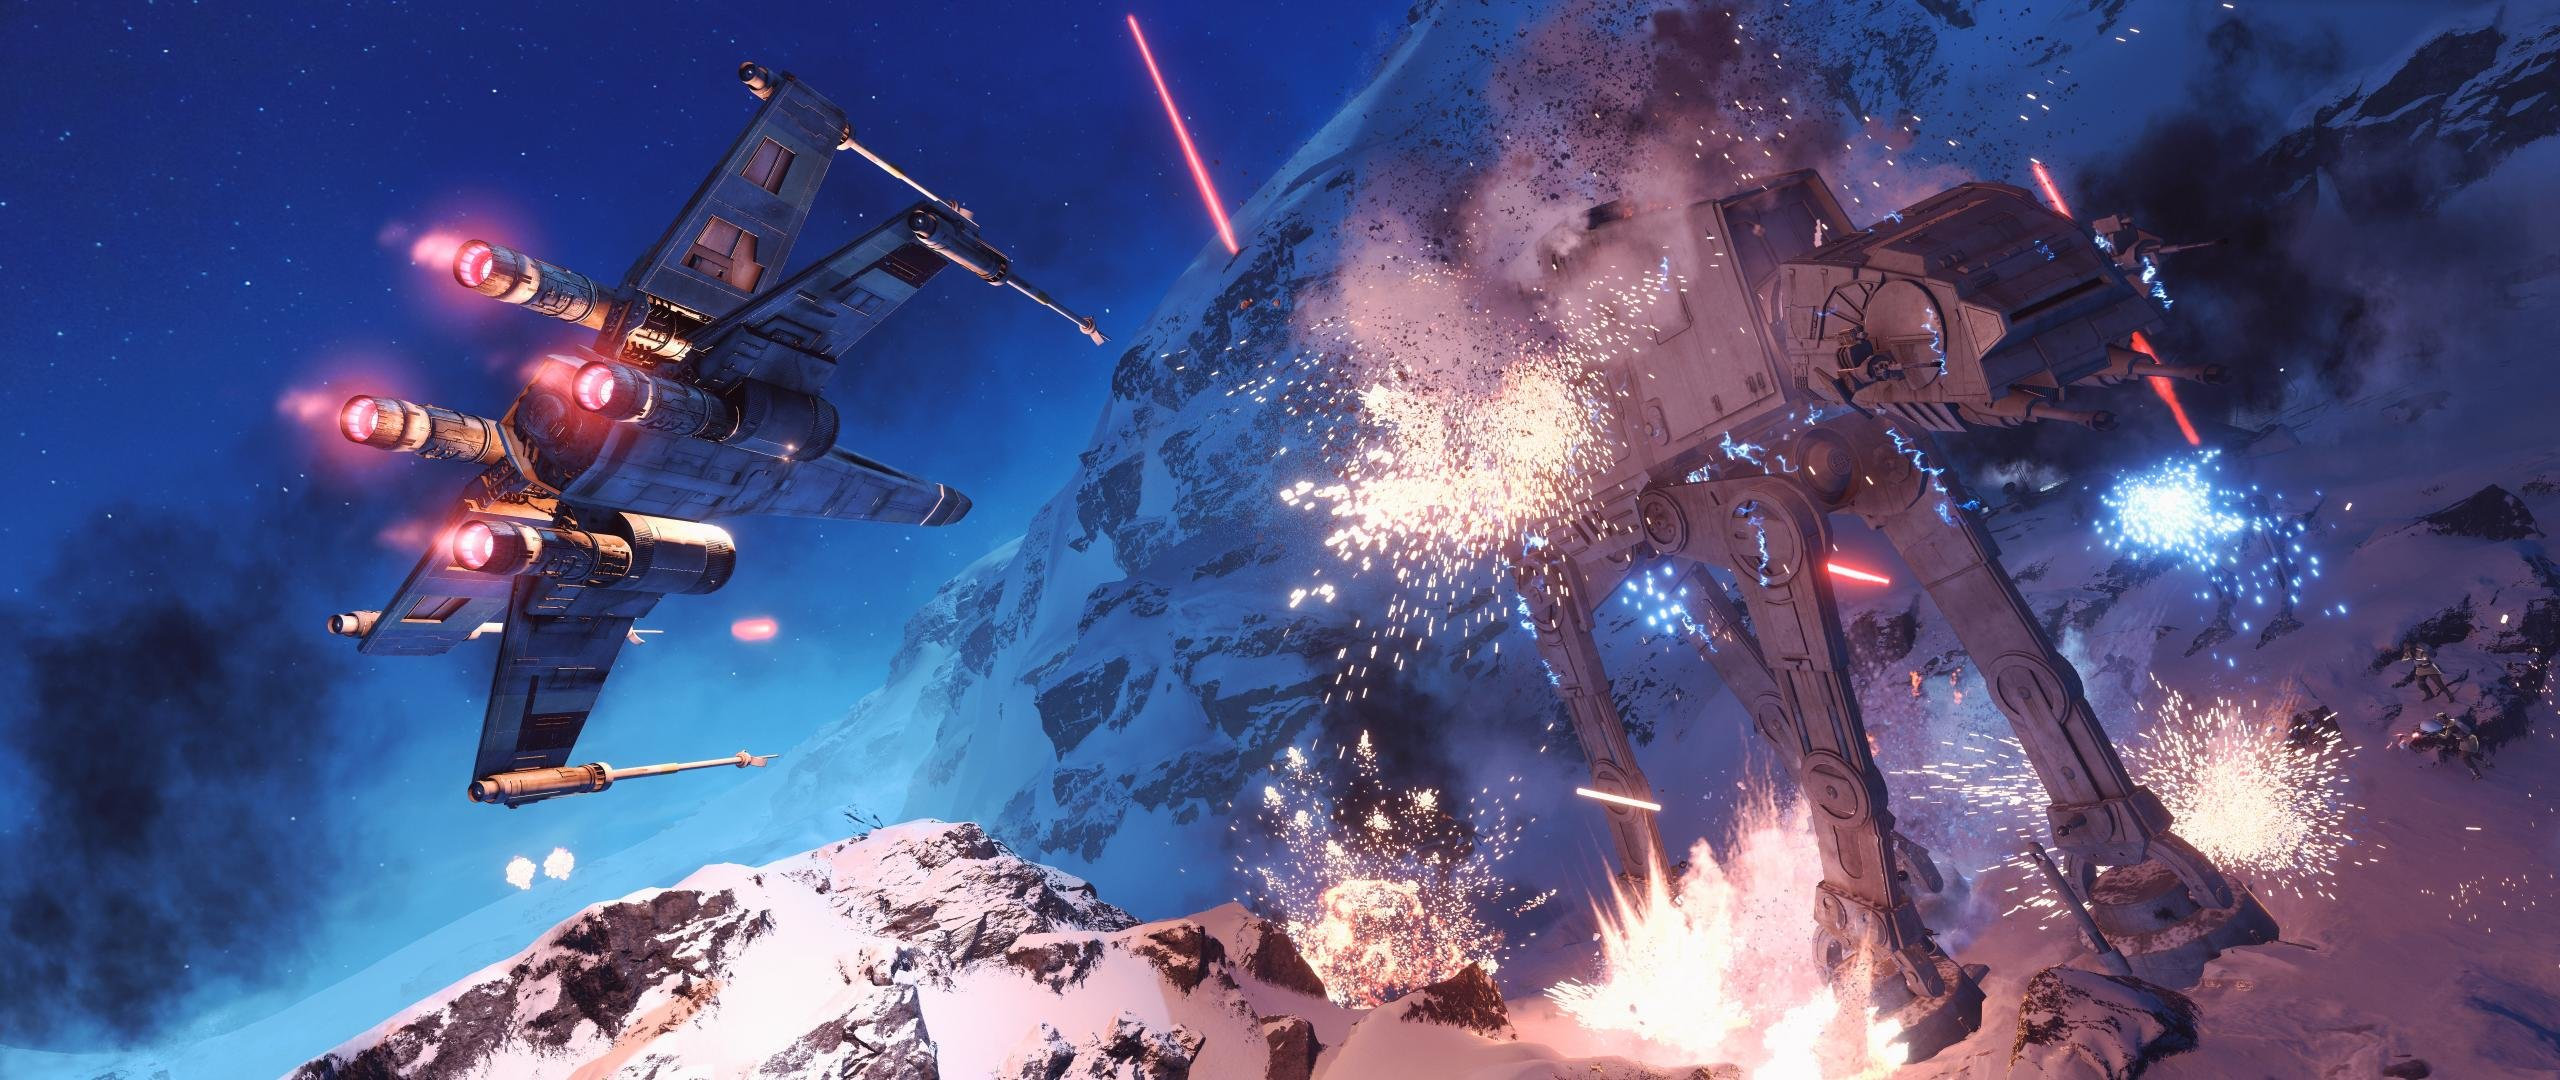 Free Star Wars Battlefront high quality background ID:162485 for hd 2560x1080 desktop